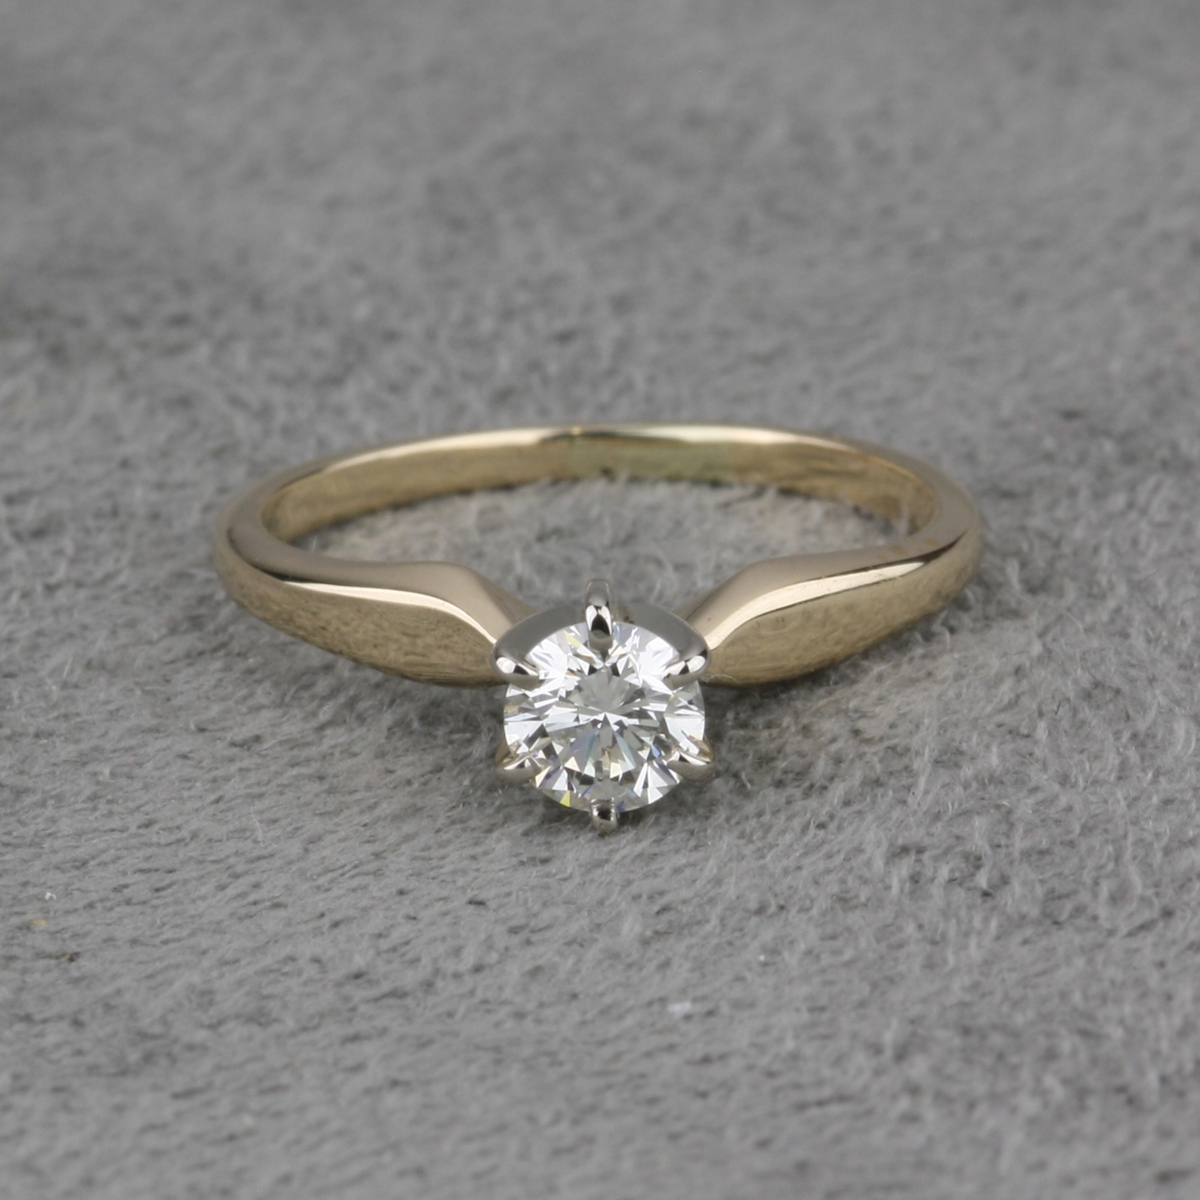 Preowned Wedding Rings: Pre-Owned Diamond Solitaire Ring